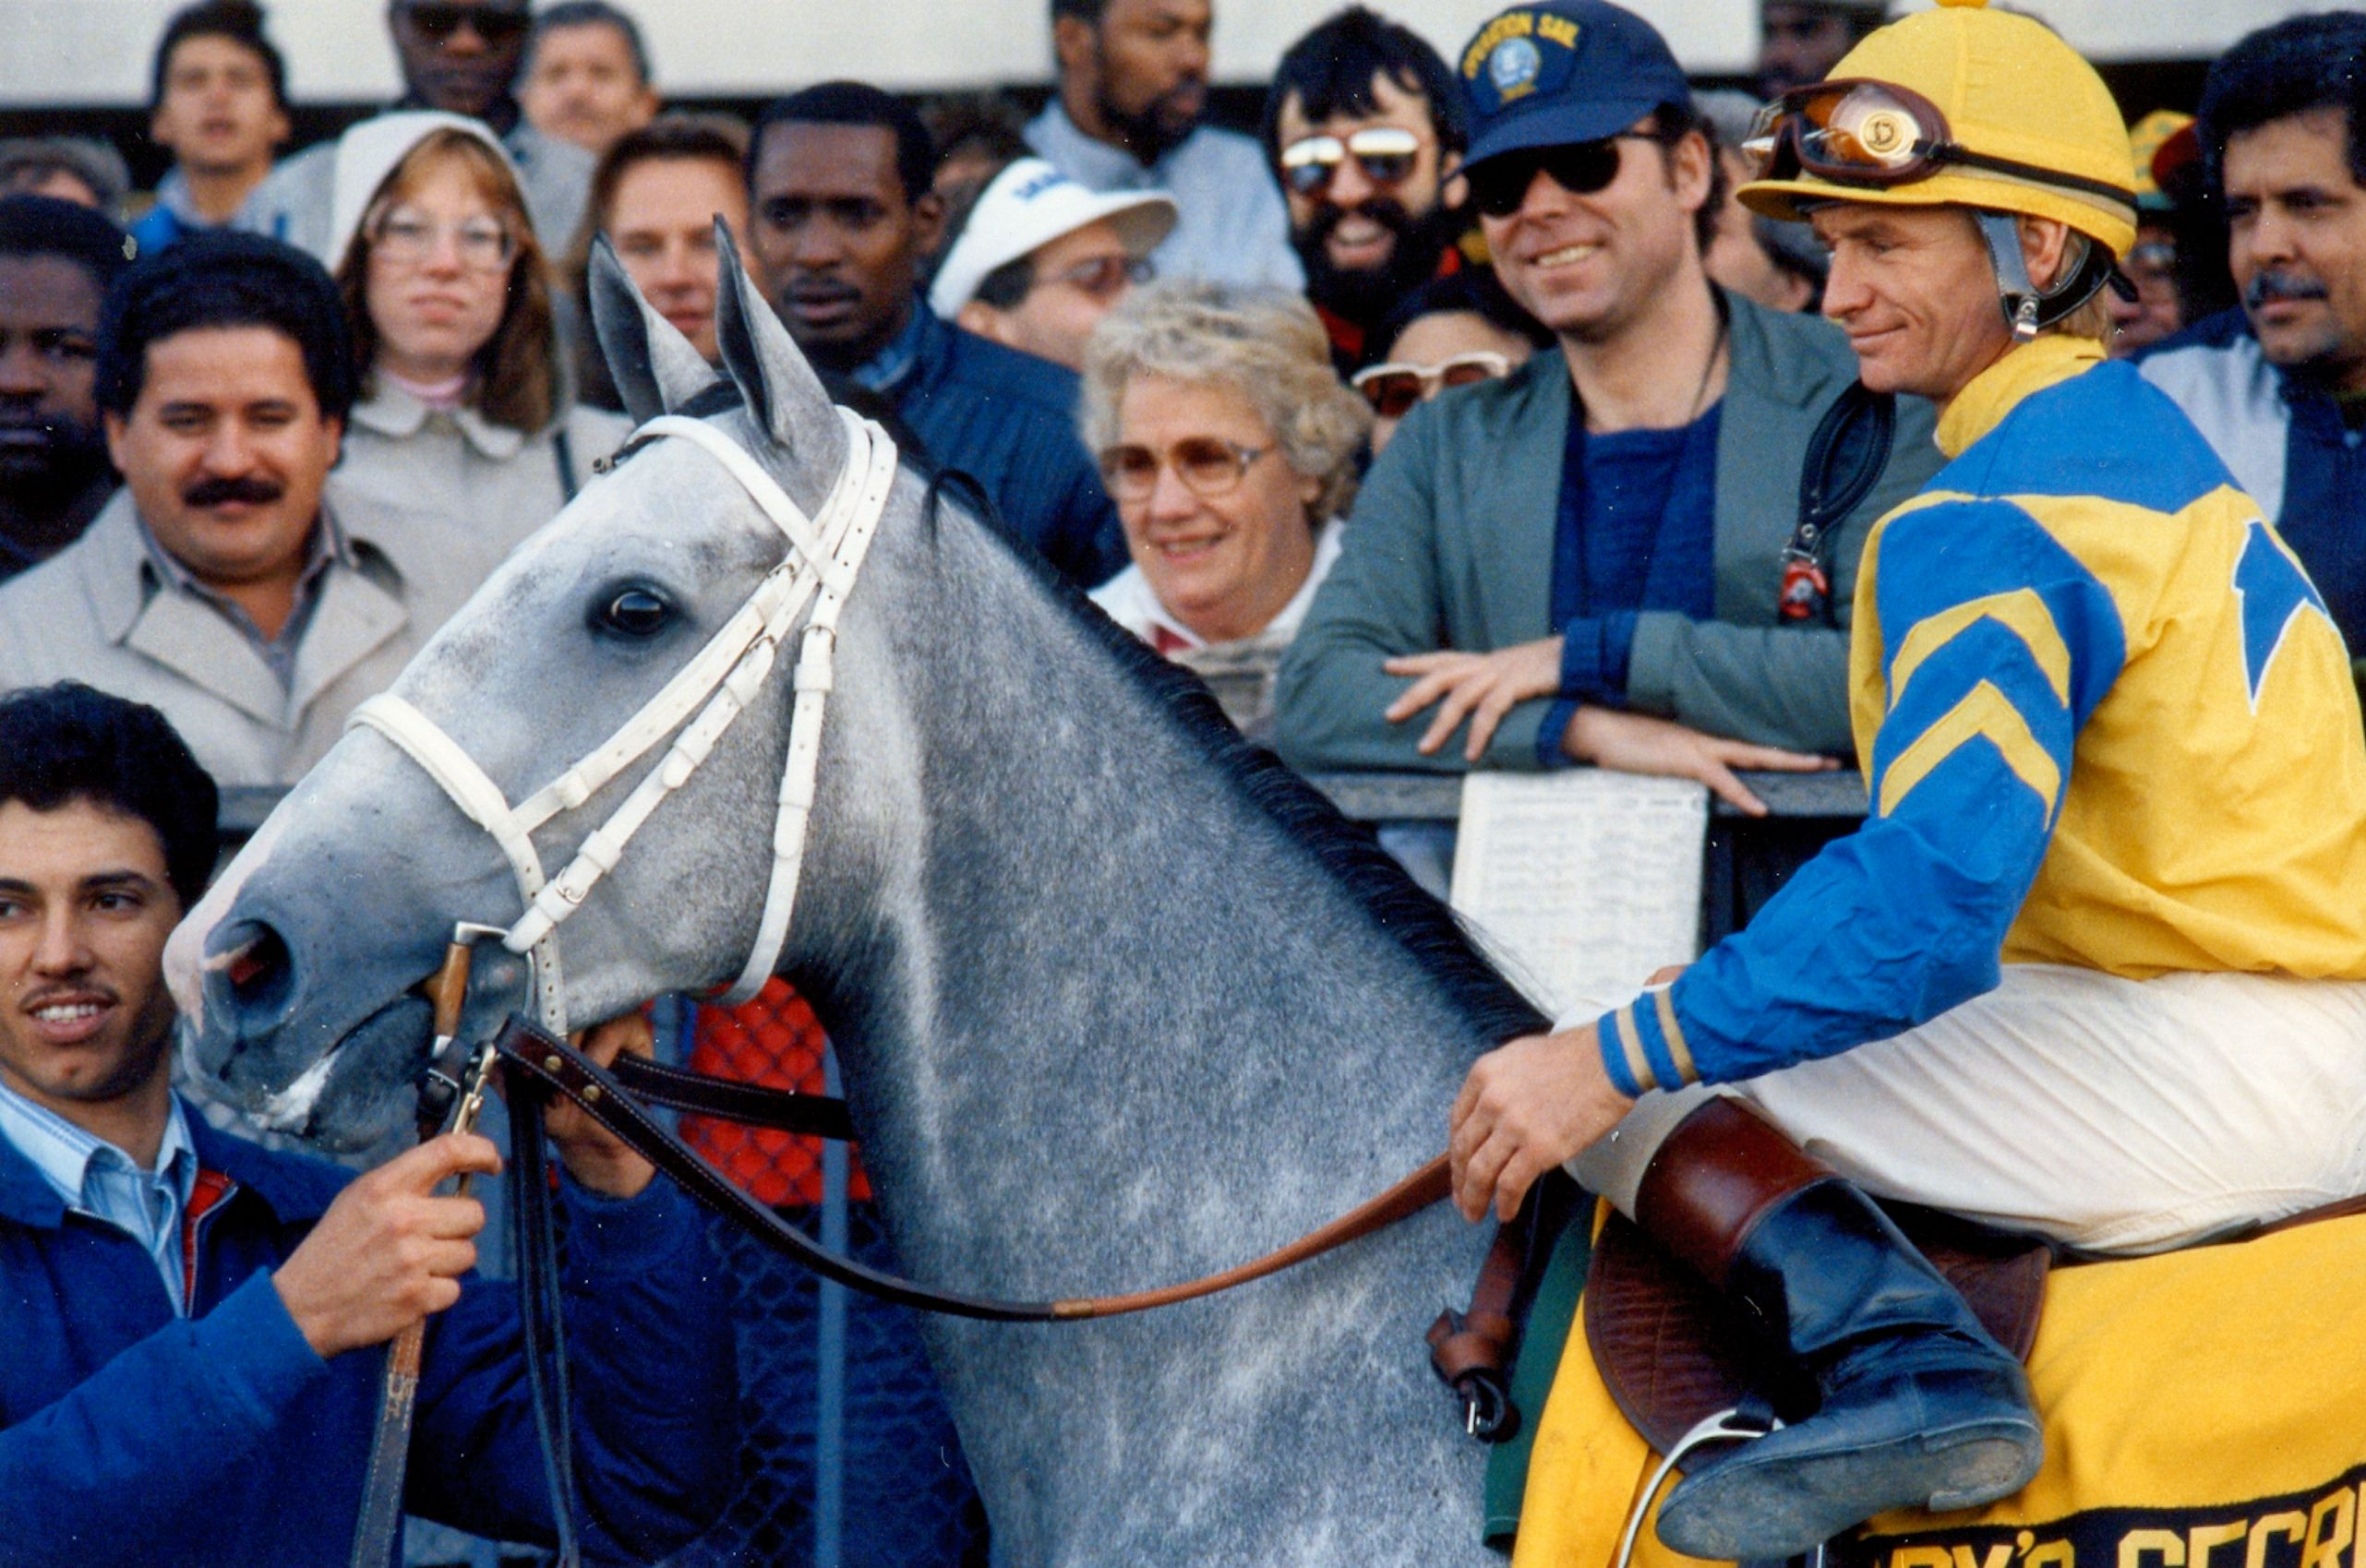 Lady's Secret (Pat Day up) in the winner's circle at Belmont Park in 1986 for Lady's Secret Day (Barbara D. Livingston/Museum Collection)